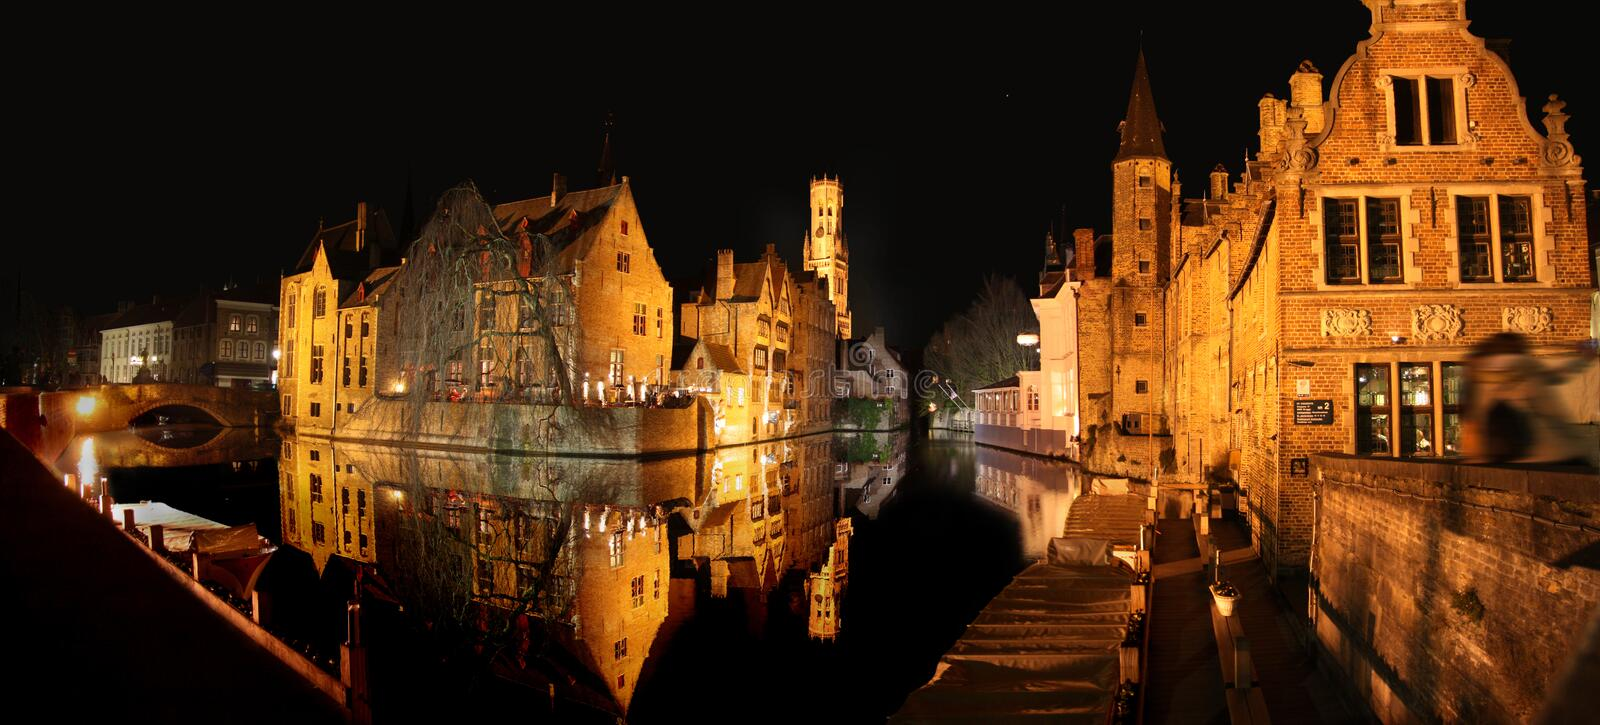 Brugge at night. Night scene of buildings and the main tower of the city Brugge (Belgium), all reflecting in a canal stock images